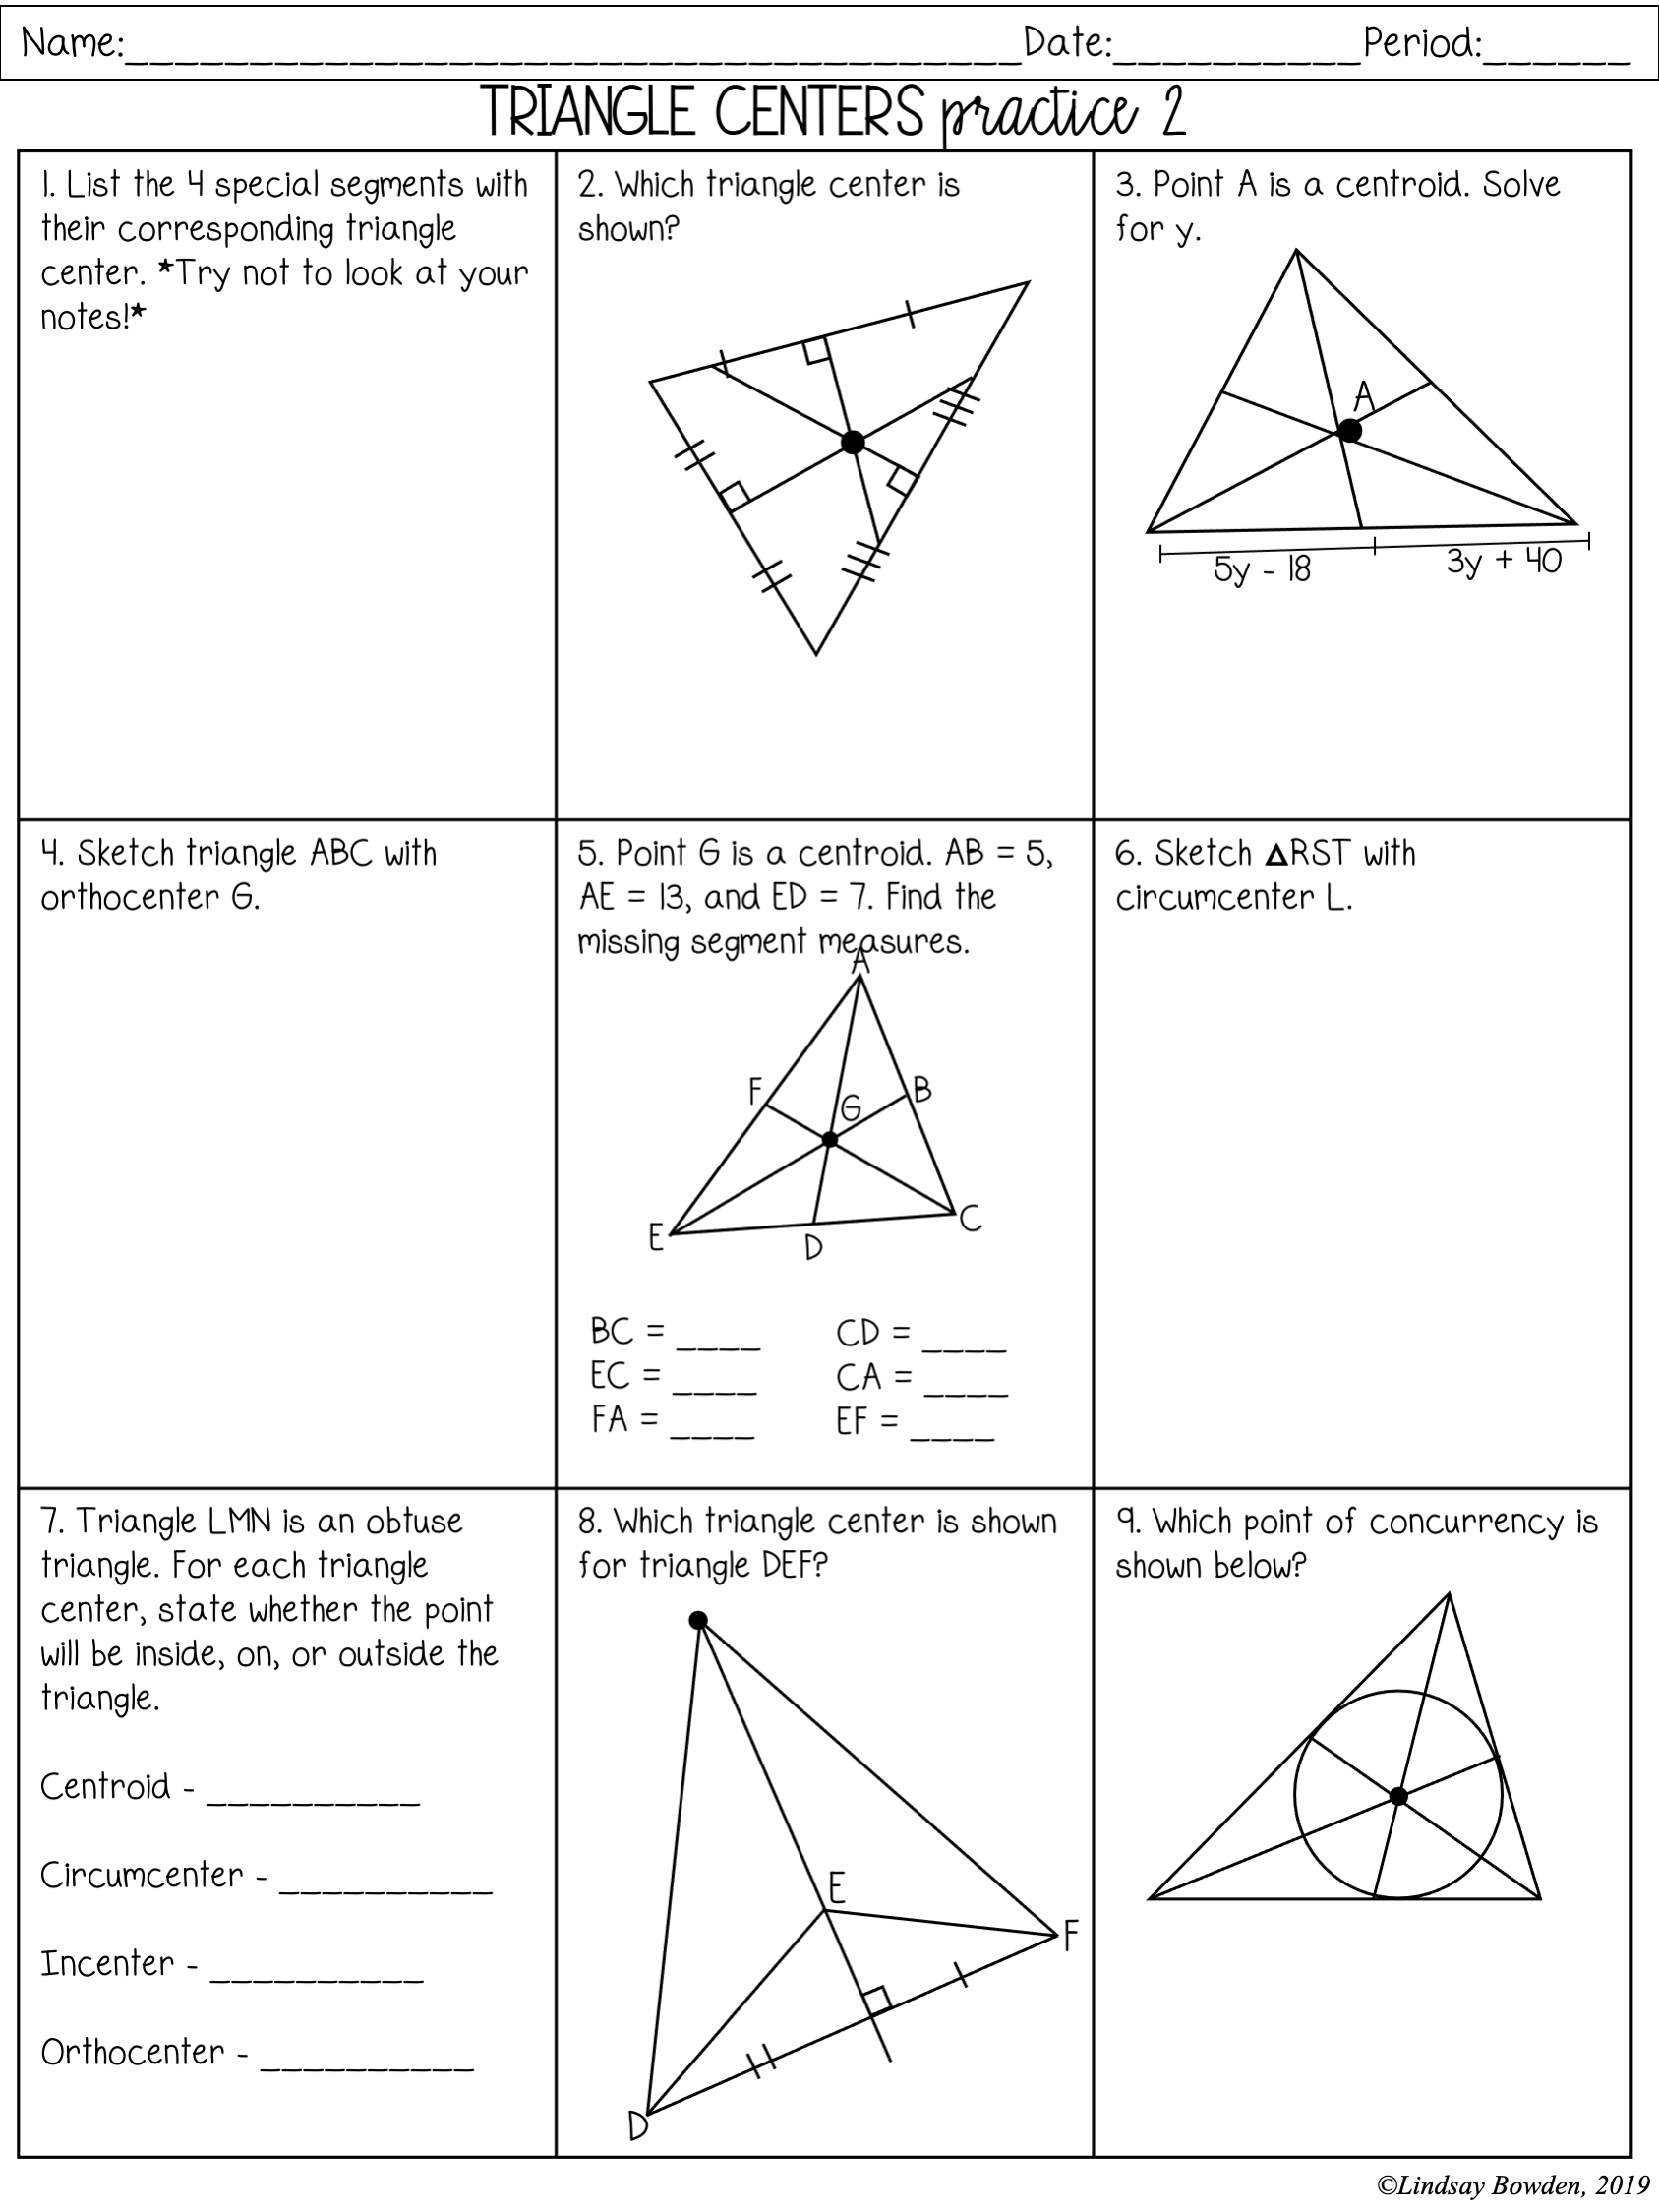 Triangle Centers Notes and Worksheets - Lindsay Bowden Within Points Of Concurrency Worksheet Answers